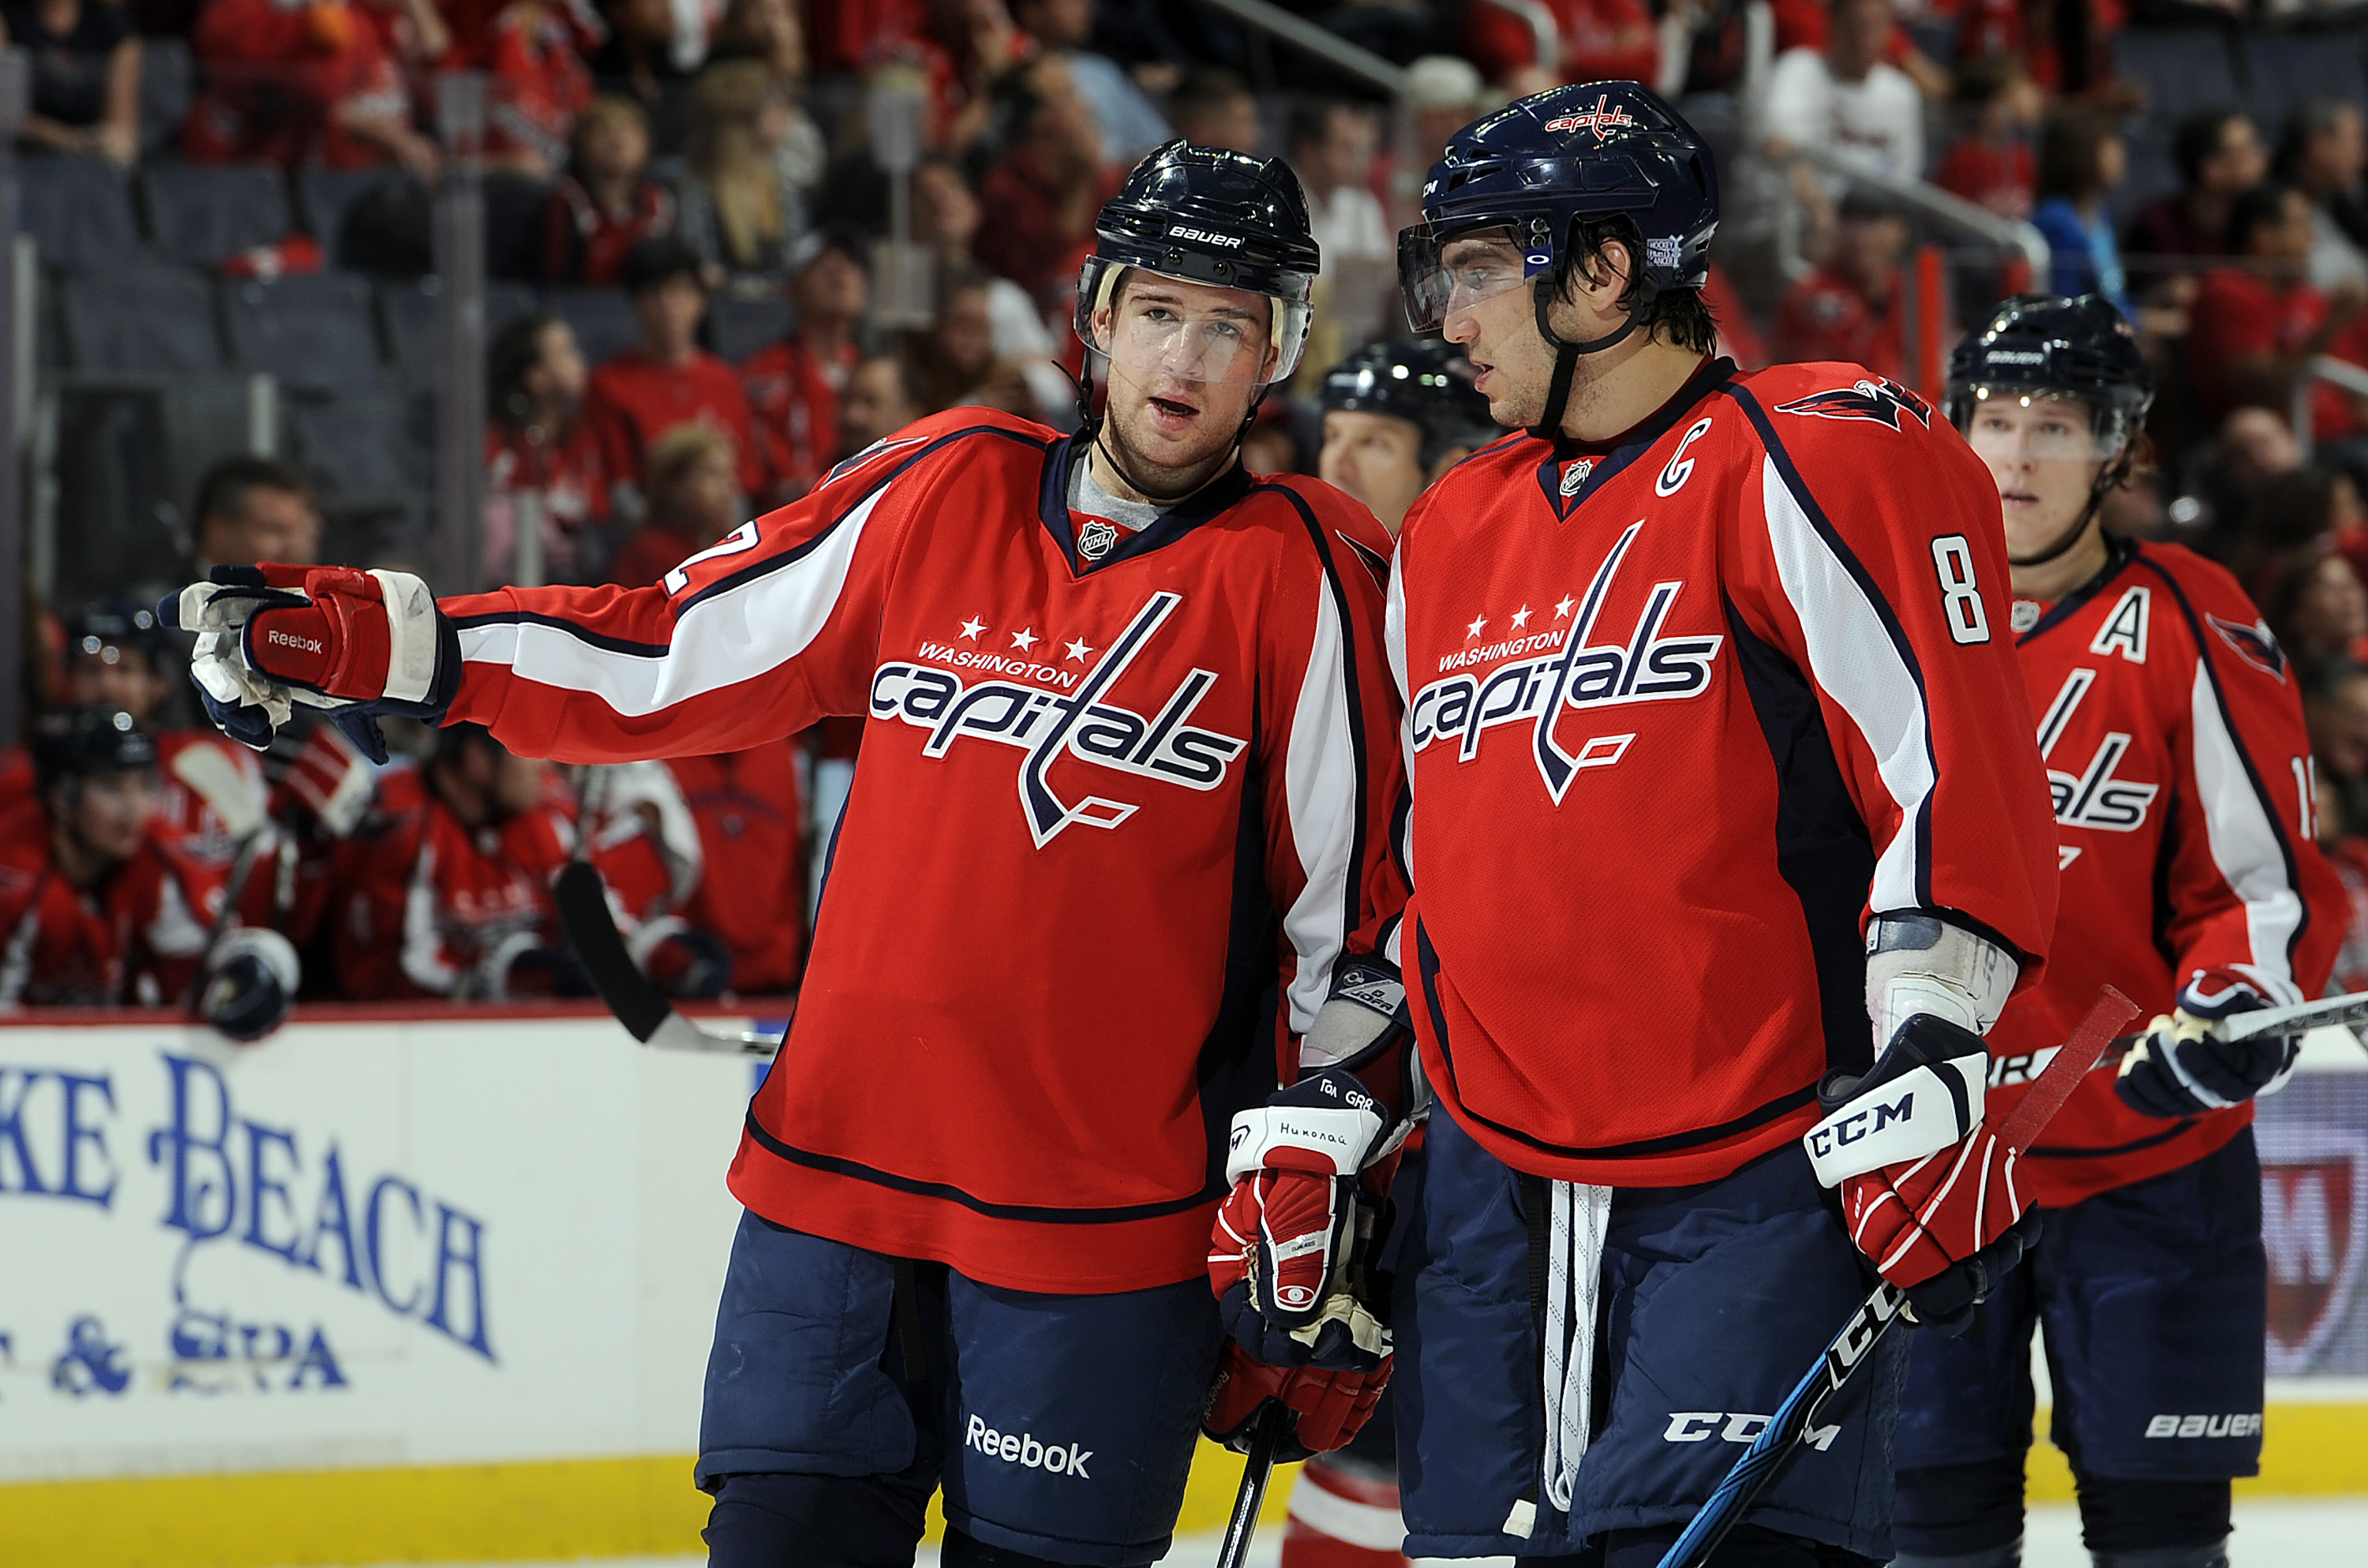 WASHINGTON - OCTOBER 11:  Mike Green #52 and Alex Ovechkin #8 of the Washington Capitals talk during the game against the Ottawa Senators at the Verizon Center on October 11, 2010 in Washington, DC.  (Photo by Greg Fiume/Getty Images)